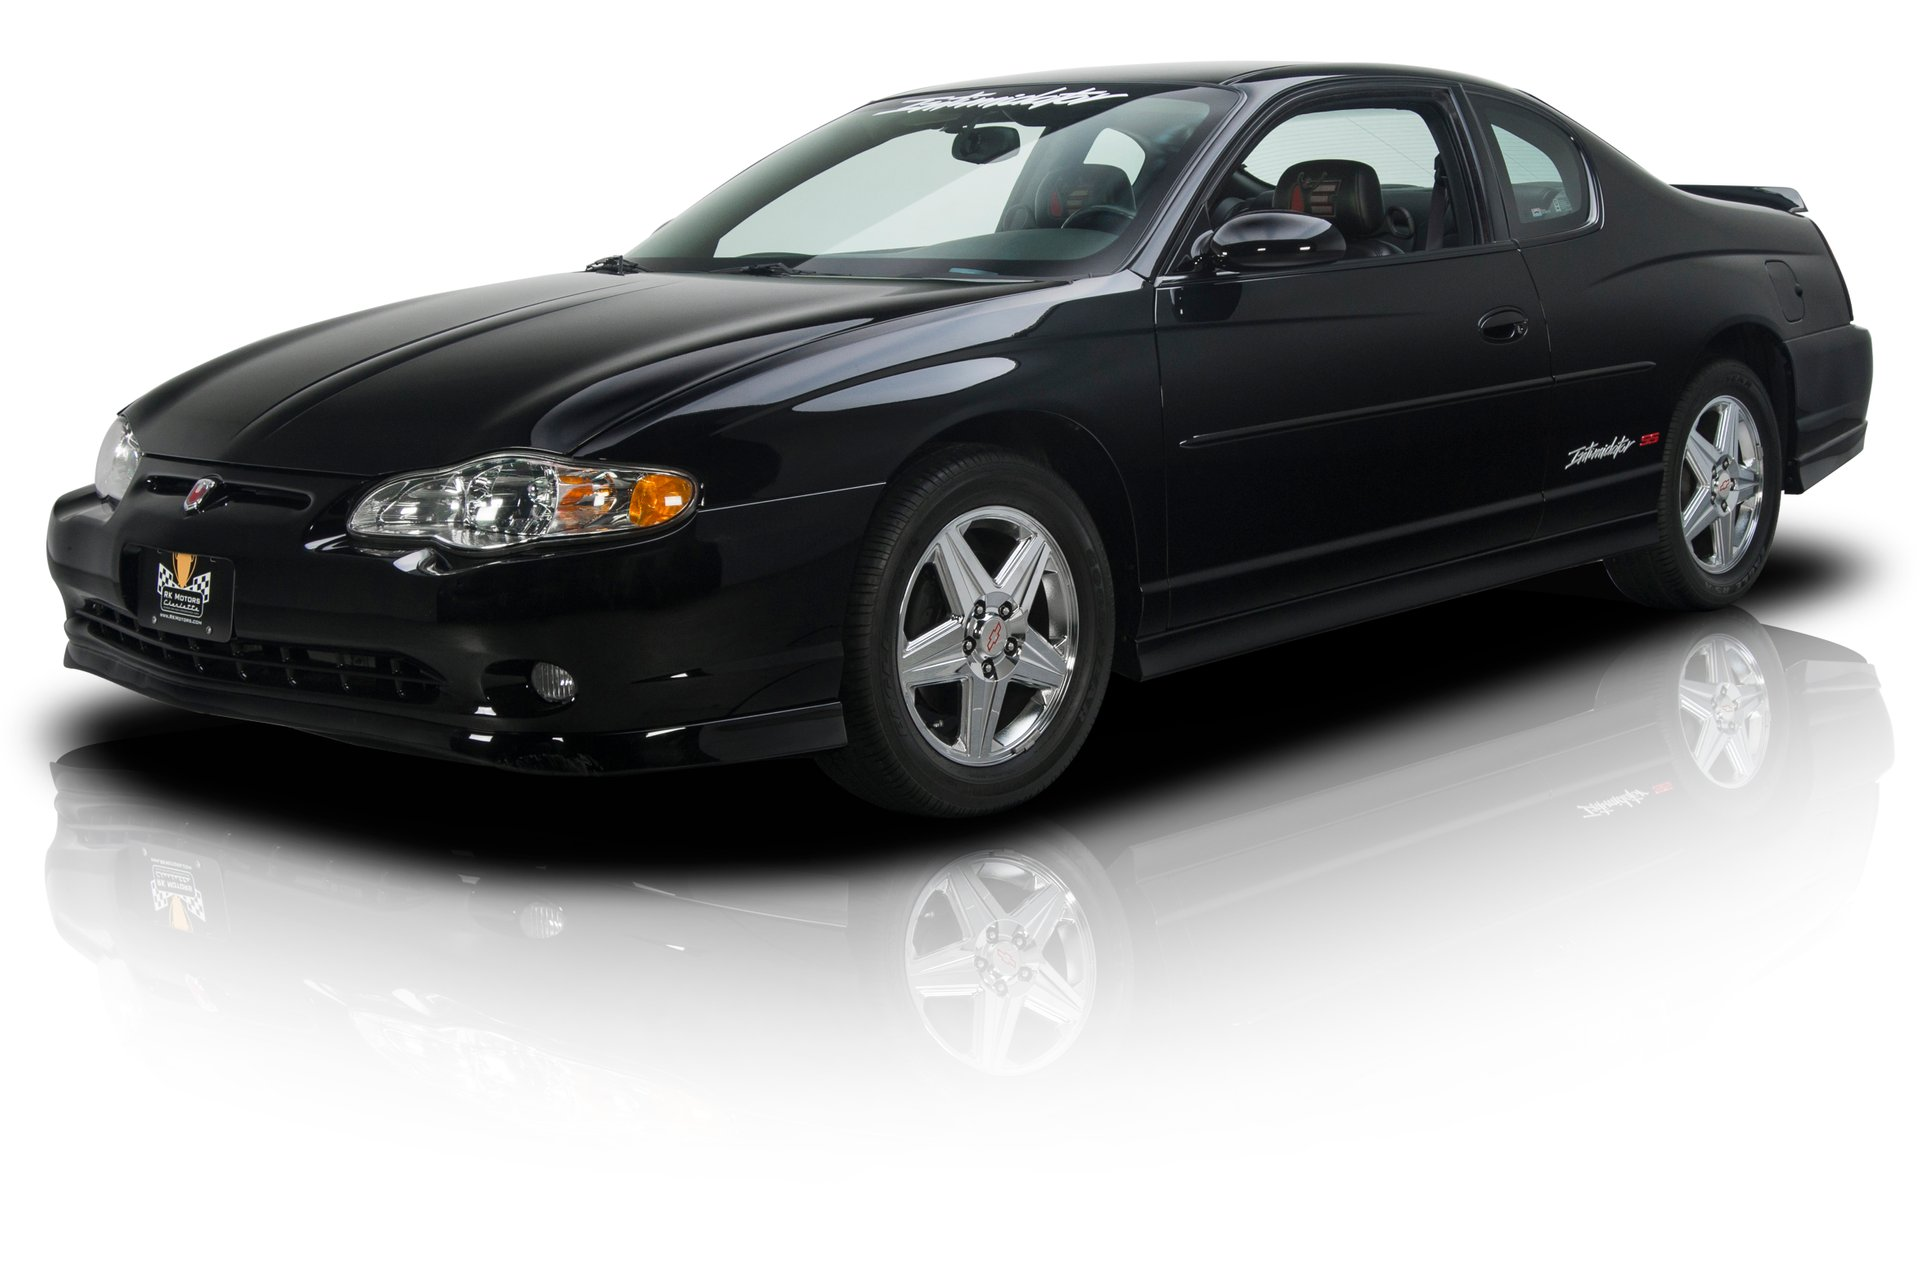 135415 2004 Chevrolet Monte Carlo Rk Motors Classic Cars And Muscle Cars For Sale